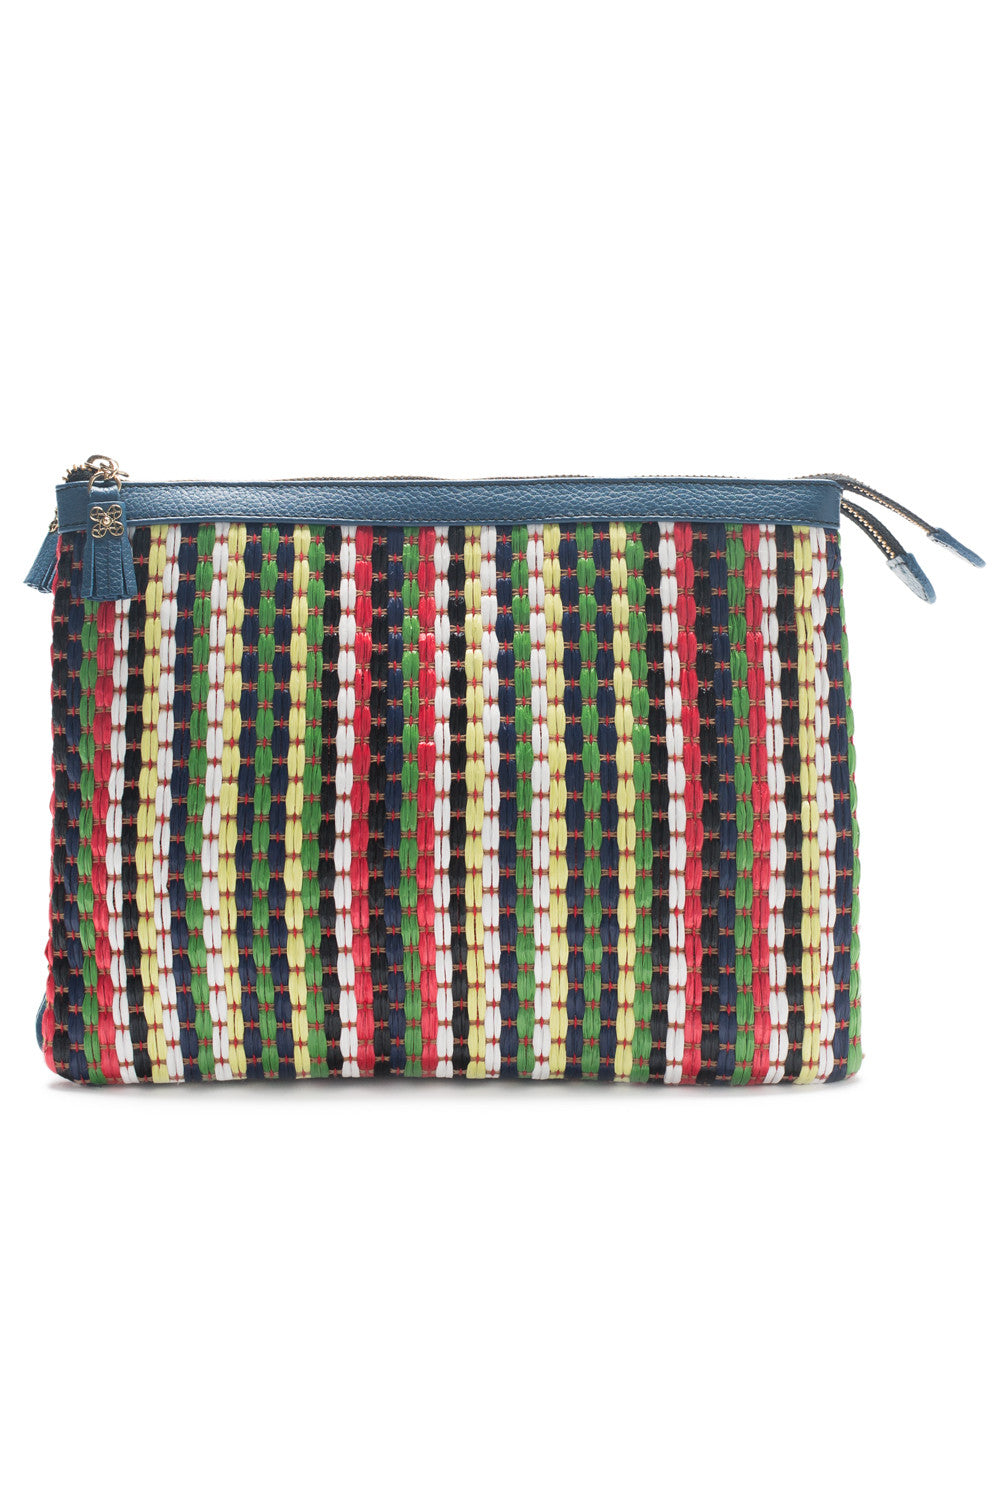 Mel Boteri | Multicolor Raffia and Denim Leather 'Abbey' Clutch | Front View